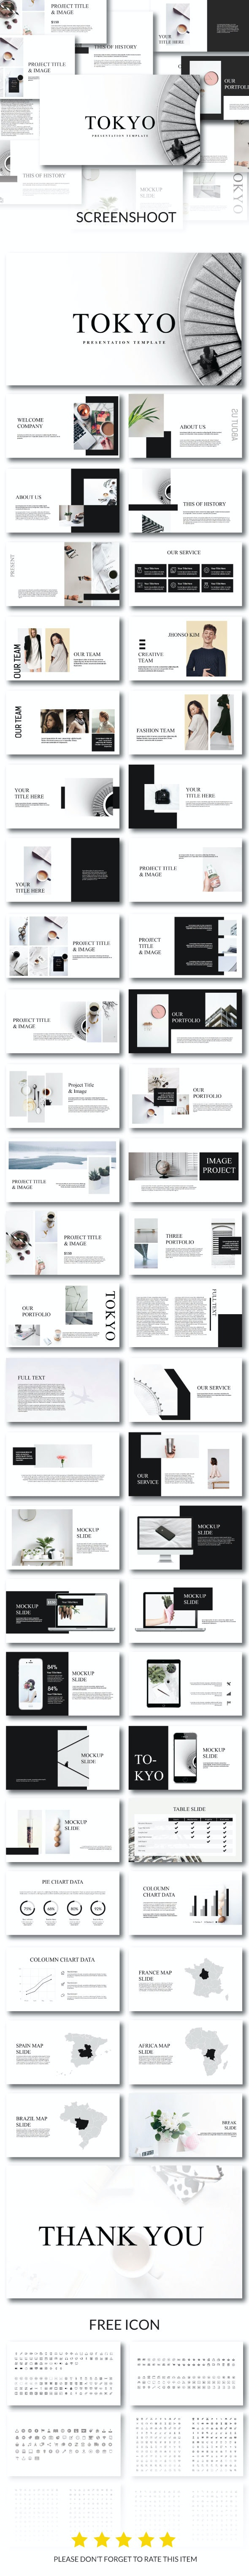 Tokyo - Powerpoint Template - PowerPoint Templates Presentation Templates